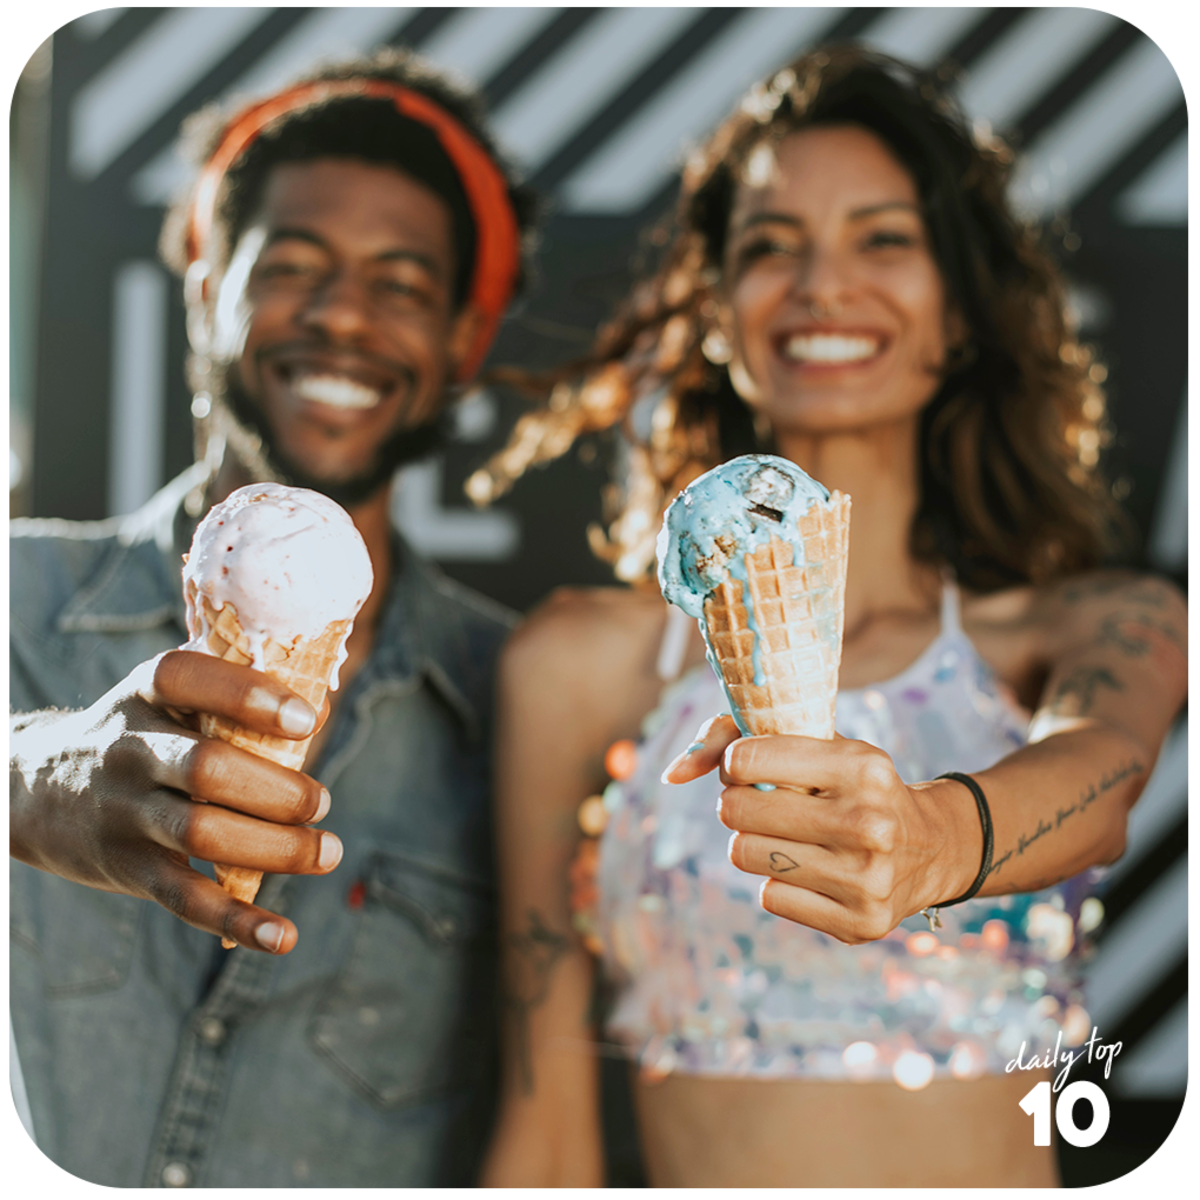 Ice cream is sweeter when shared with the one you love!